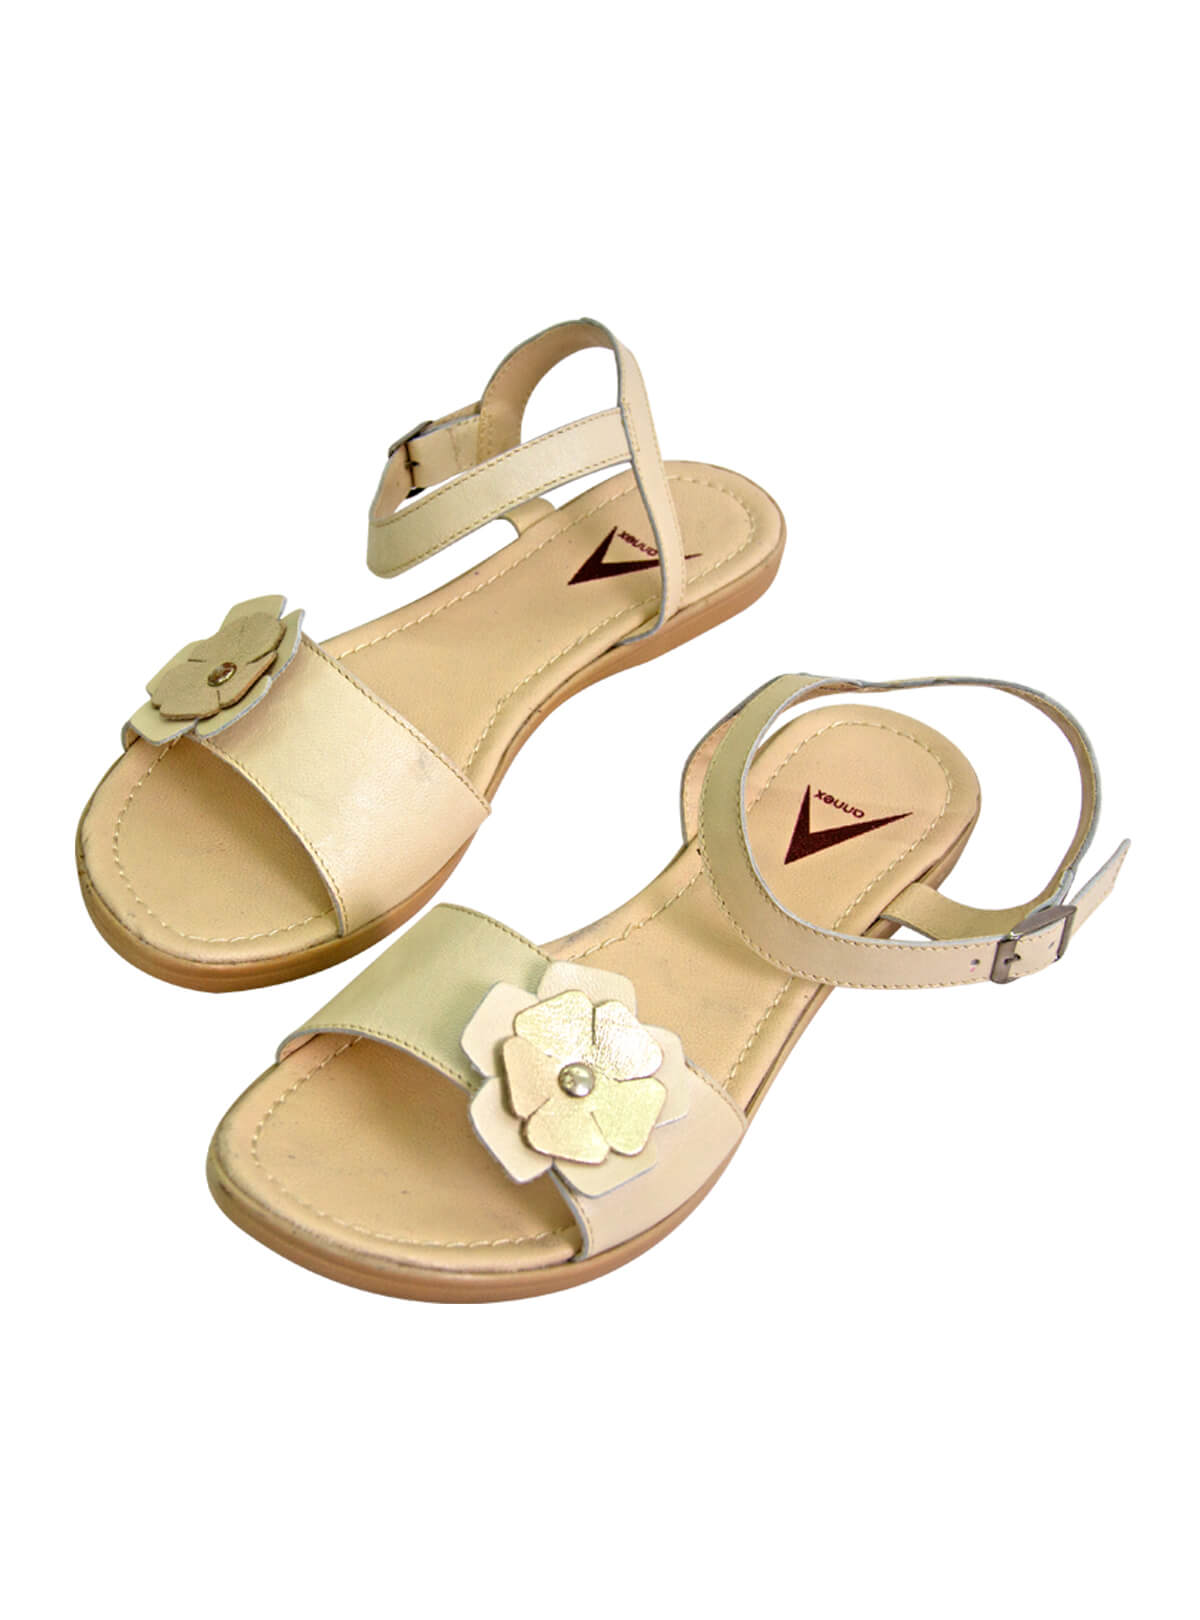 Spanish White Ladies Leather Sandal